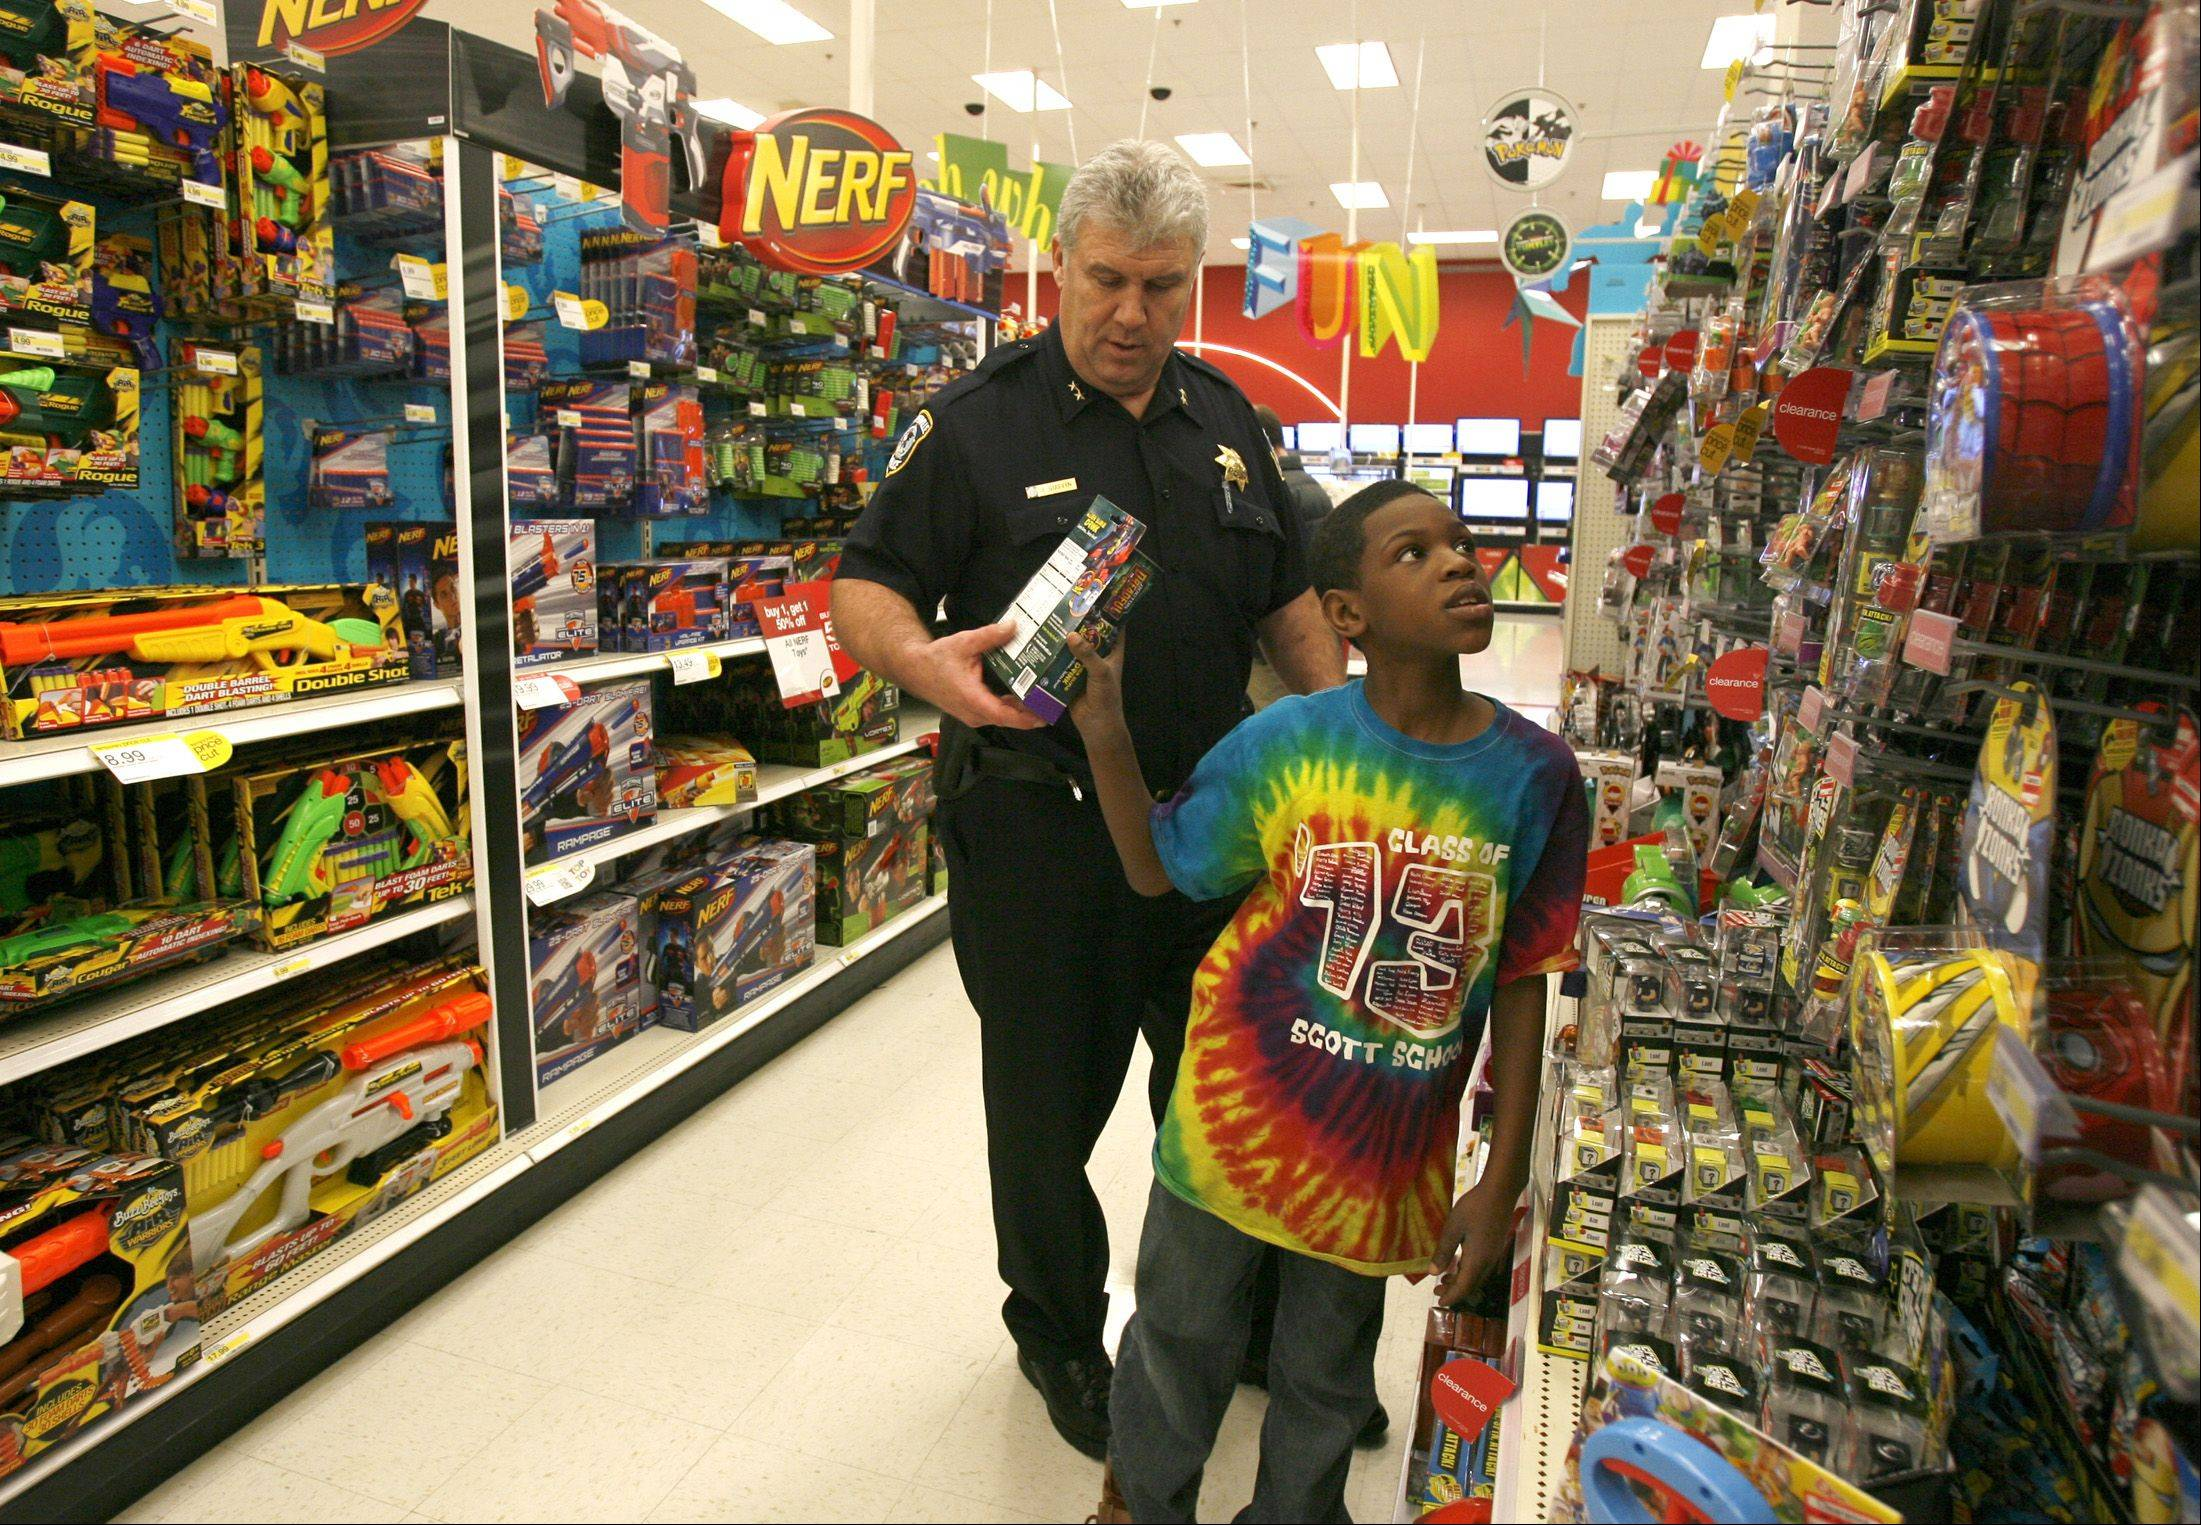 Darrell Ware, 10, of Naperville is teams up with Naperville Deputy Chief John Gustin, who guides a shopping spree at a Naperville Target Store. The NFOP in conjunction with the City of Naperville's youth services unit, selected several children to participate in a $150.00 shopping spree.